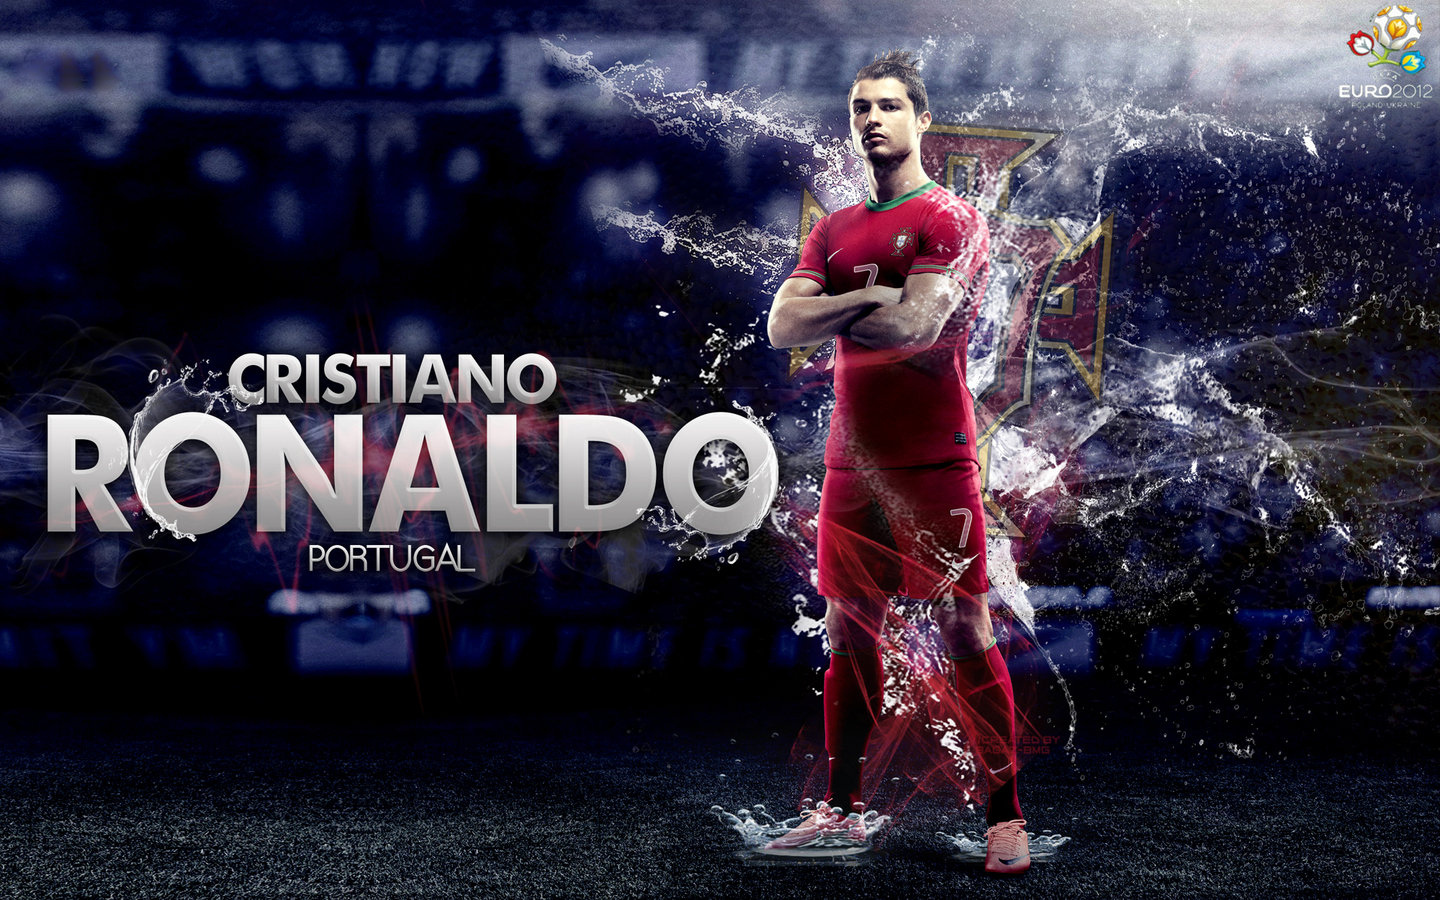 http://3.bp.blogspot.com/-rjps_aftYto/UDt4dB09zKI/AAAAAAAAEtQ/wEzsEPIfk6E/s1600/real-madrid-wallpaper-HD-ronaldo-red.jpg